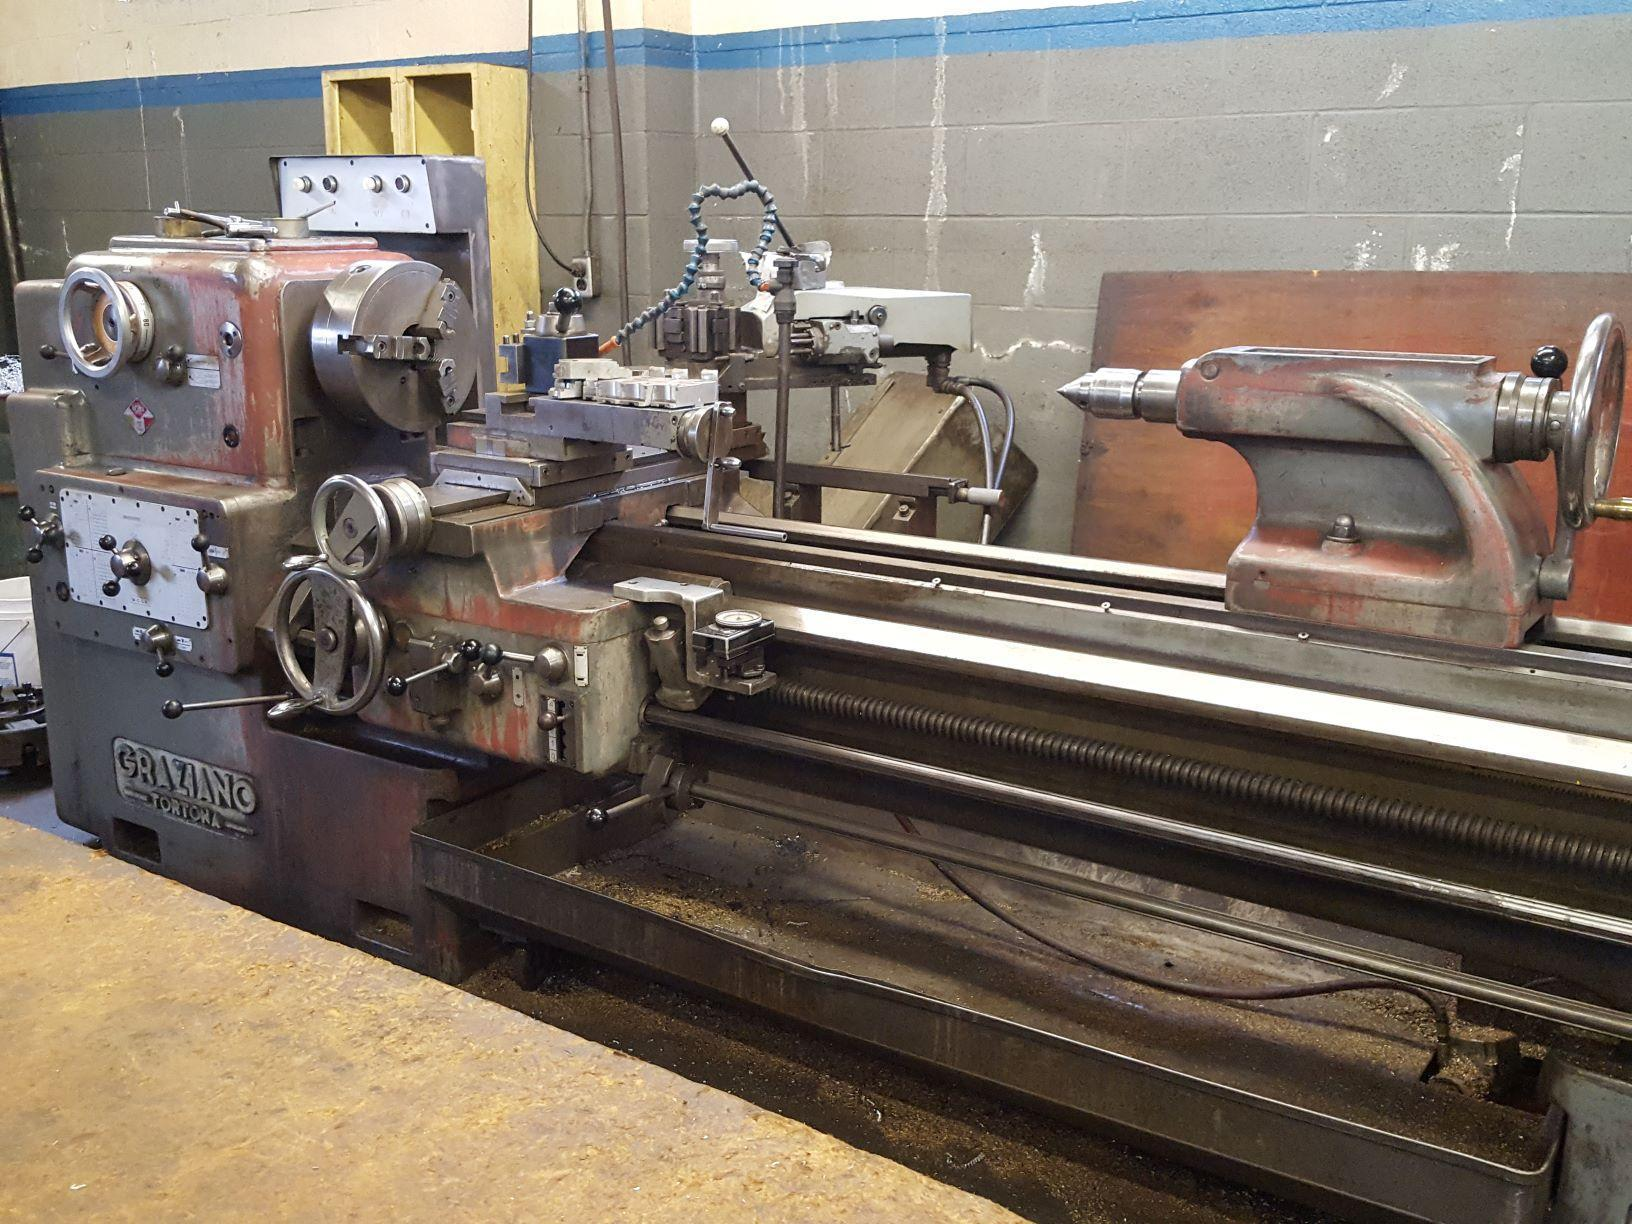 "GRAZIANOGraziano SAG20 Gap Bed Lathe  27 7/8"" swing over gap, 80"" between centers, 2 1/4"" spindle"